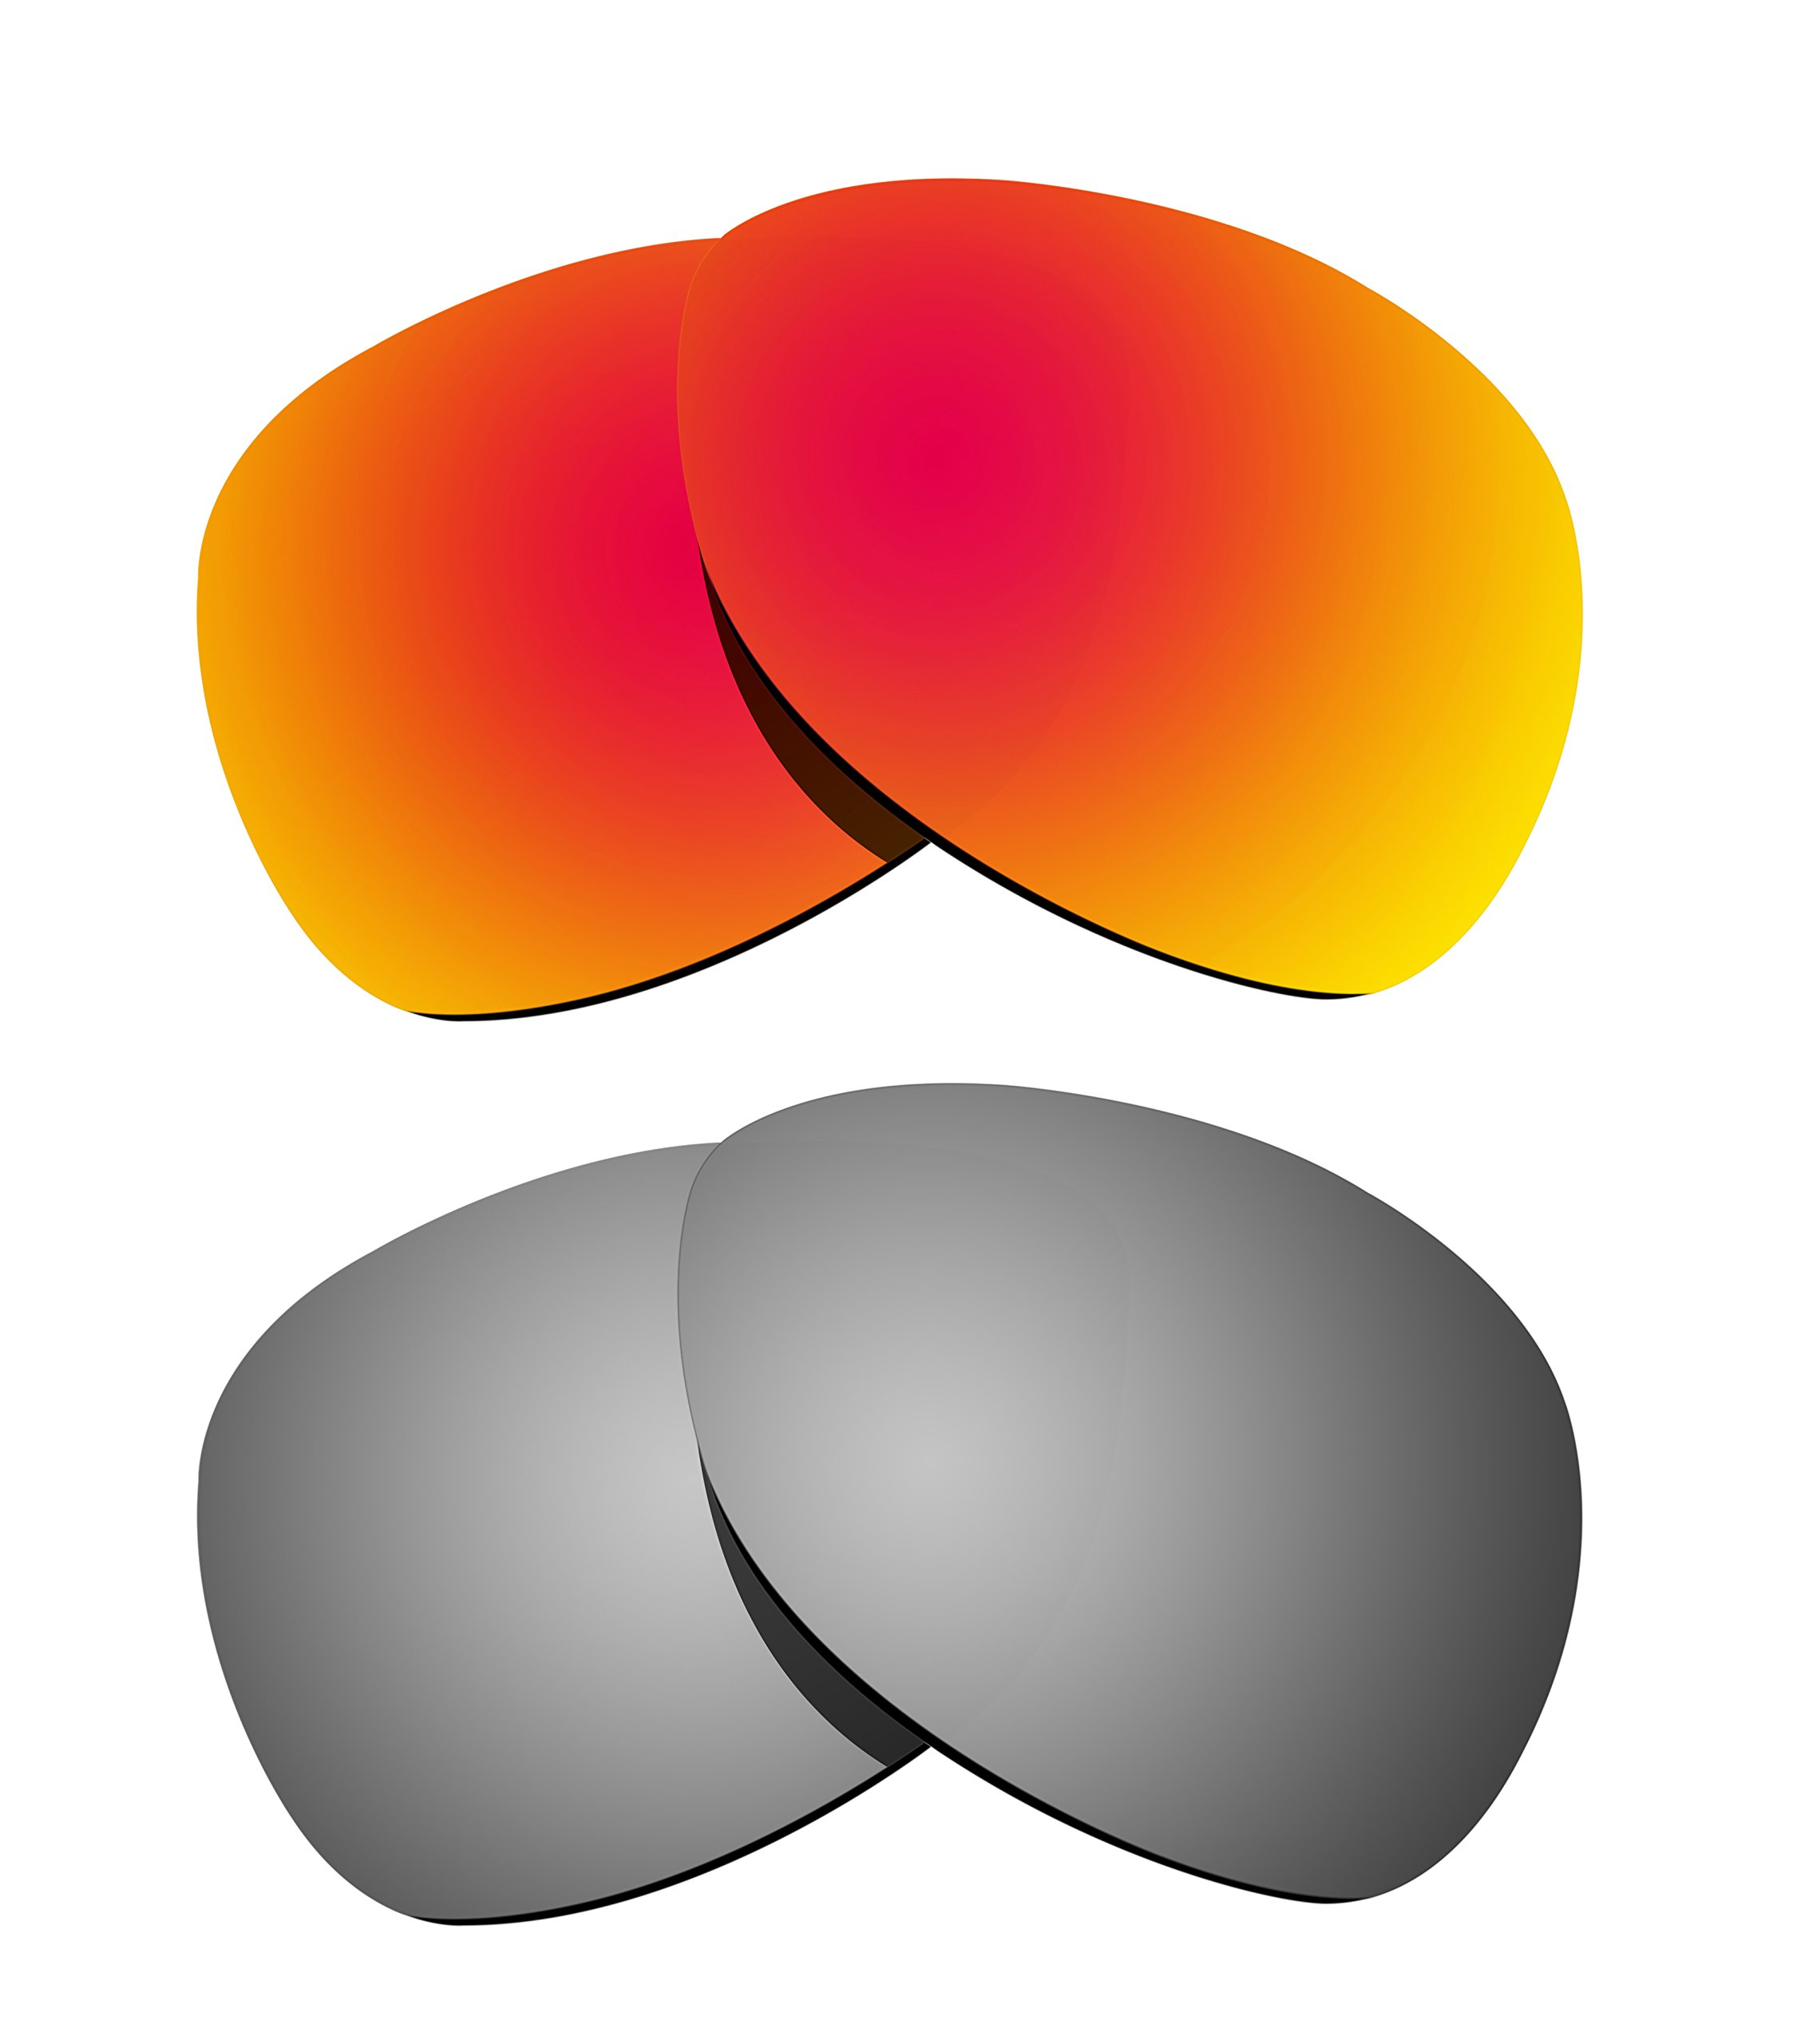 Littlebird4 2 Pairs 1.5mm Polarized Replacement Lenses for Oakley Crosshair Sunglasses - Multiple Options (Silver+Fire Red)